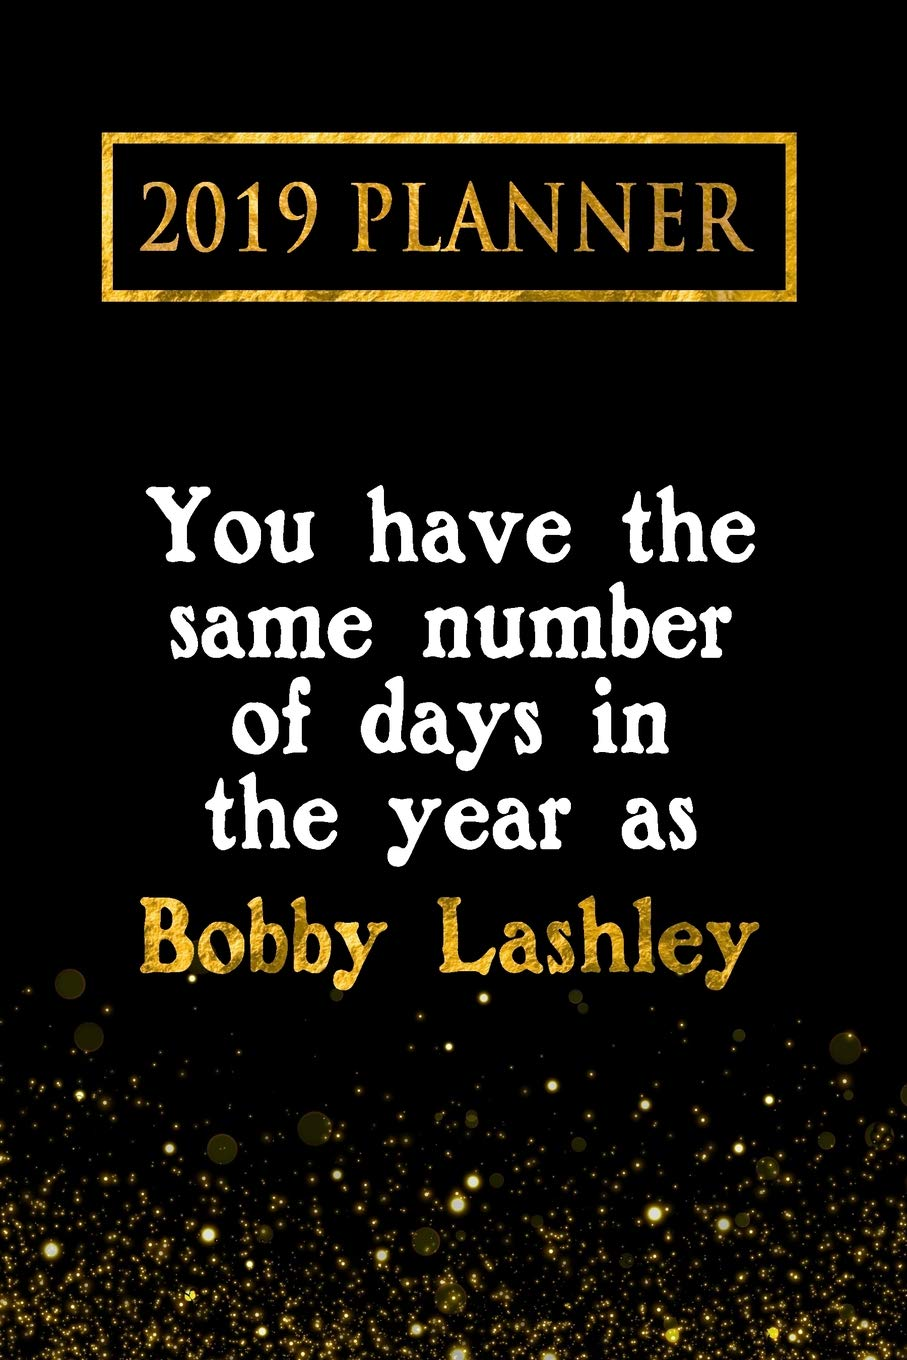 2019 Planner You Have The Same Number Of Days In The Year As Bobby